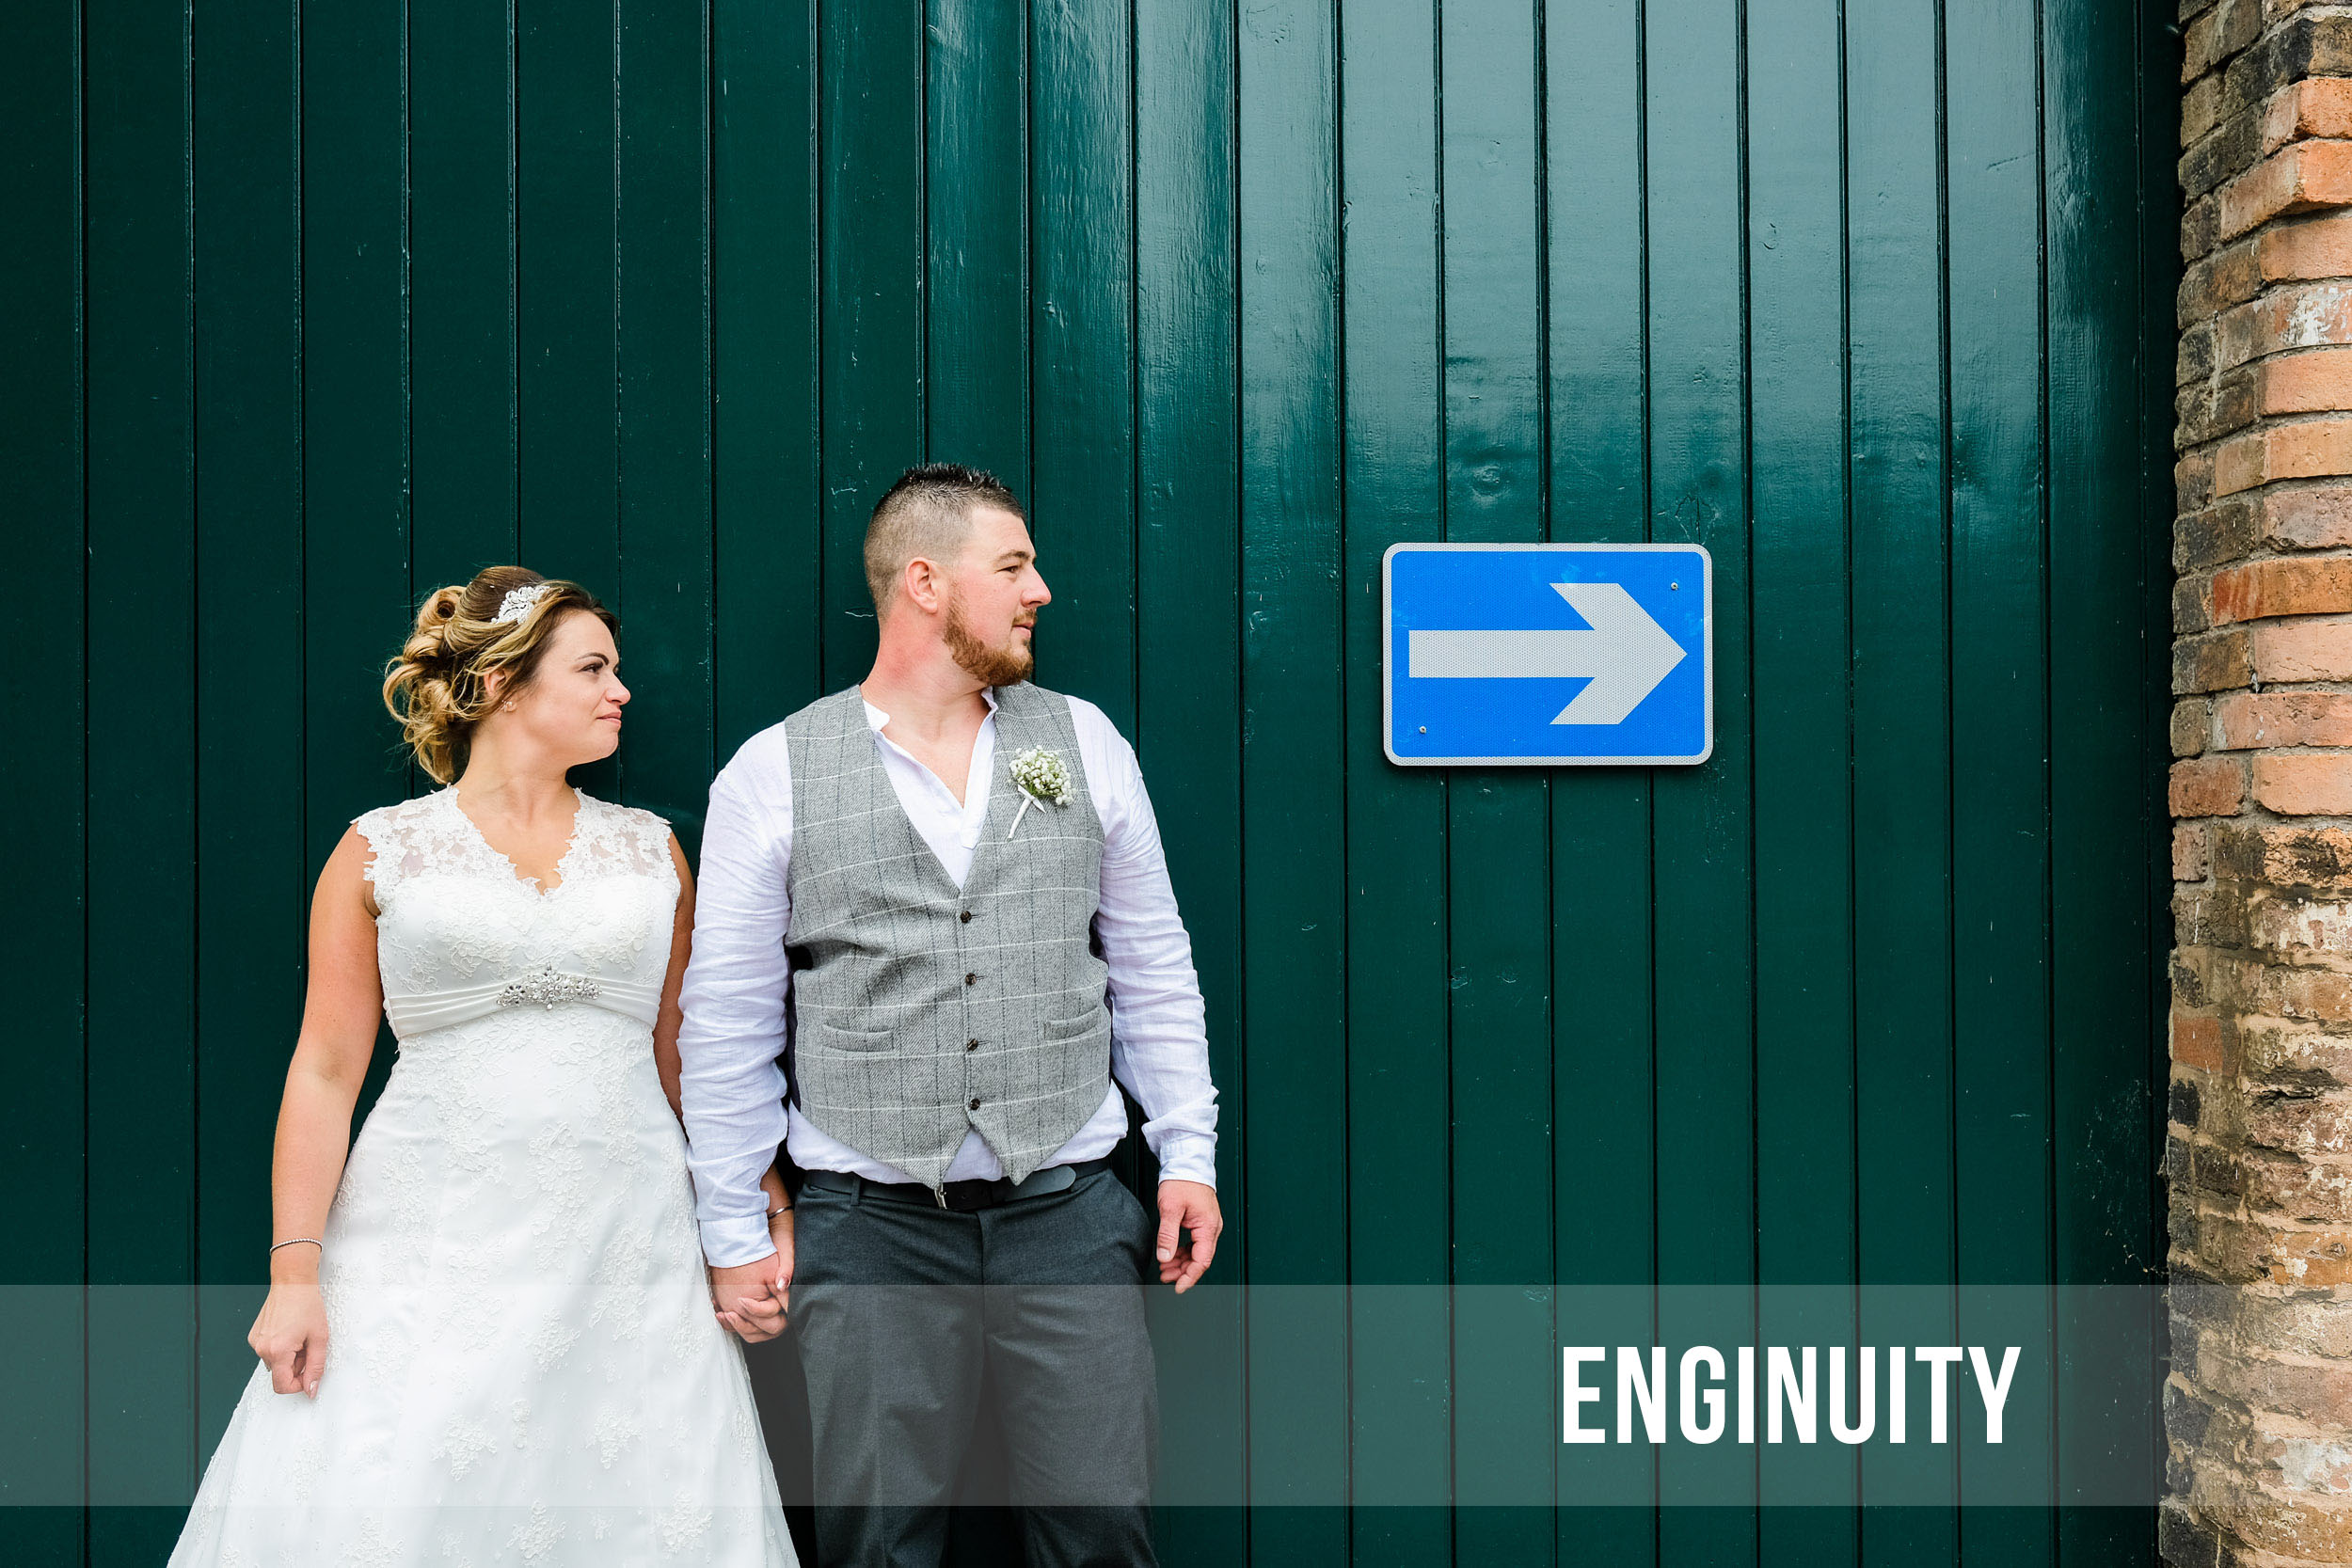 Enginuity Ironbridge Wedding Photographer.jpg